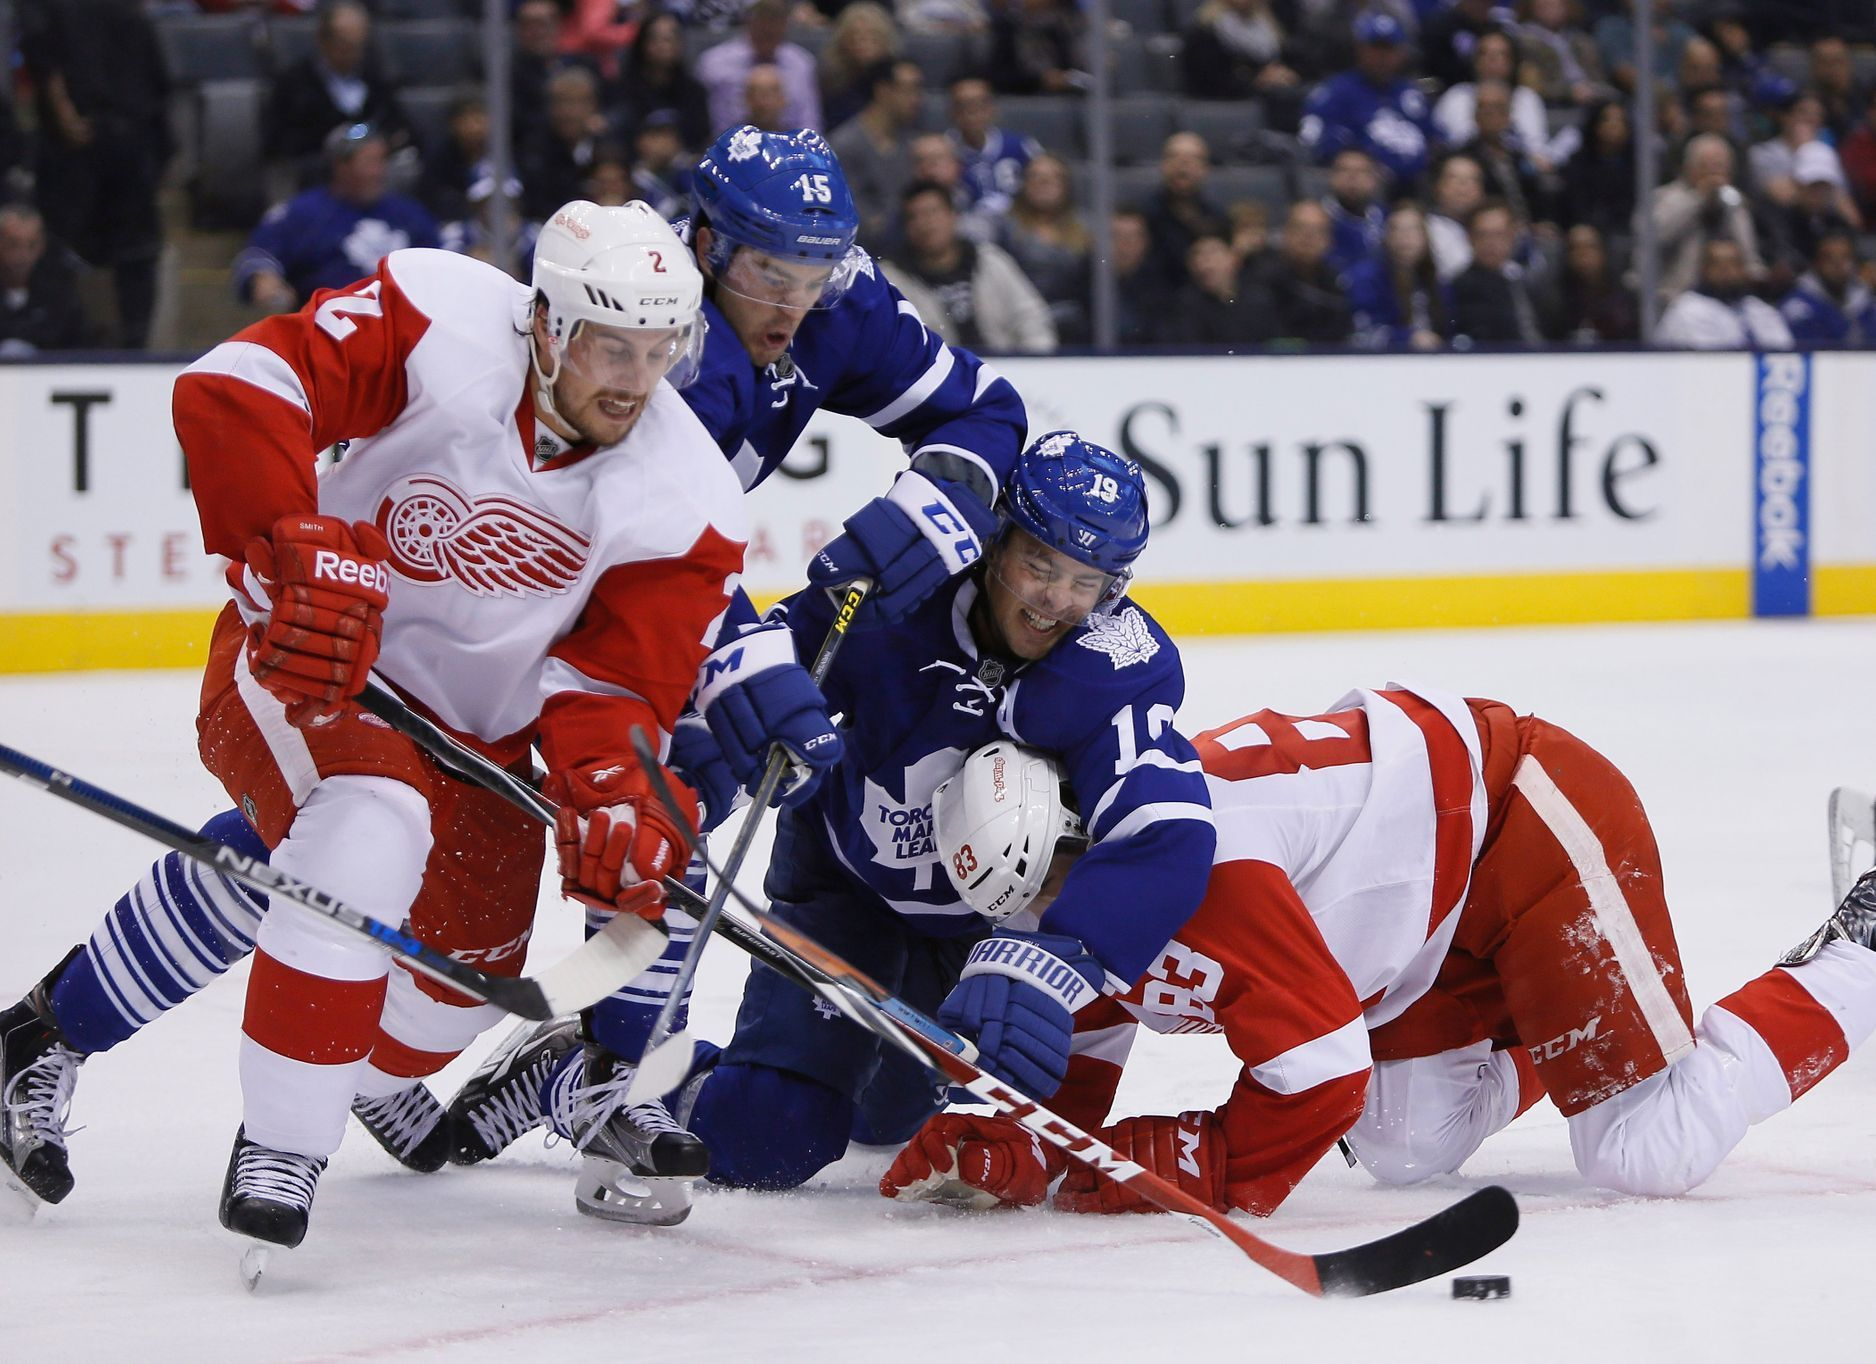 NHL: Preseason-Detroit Red Wings vs Toronto Maple Leafs (Smith, Nosek, Parenteau,Lupul)